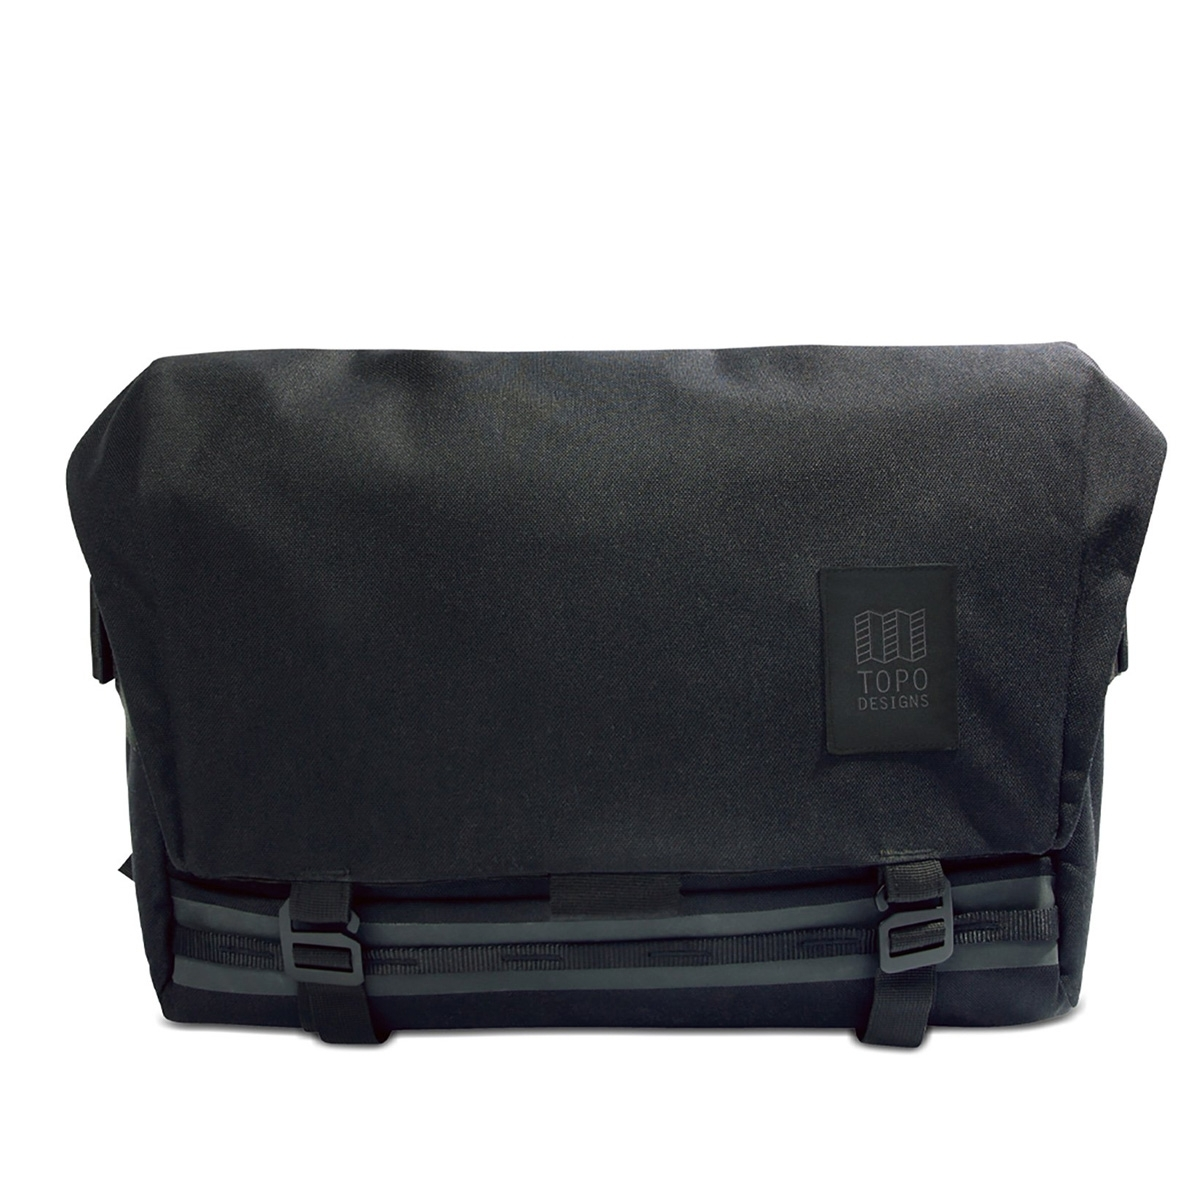 Topo Designs Messenger Bag Black